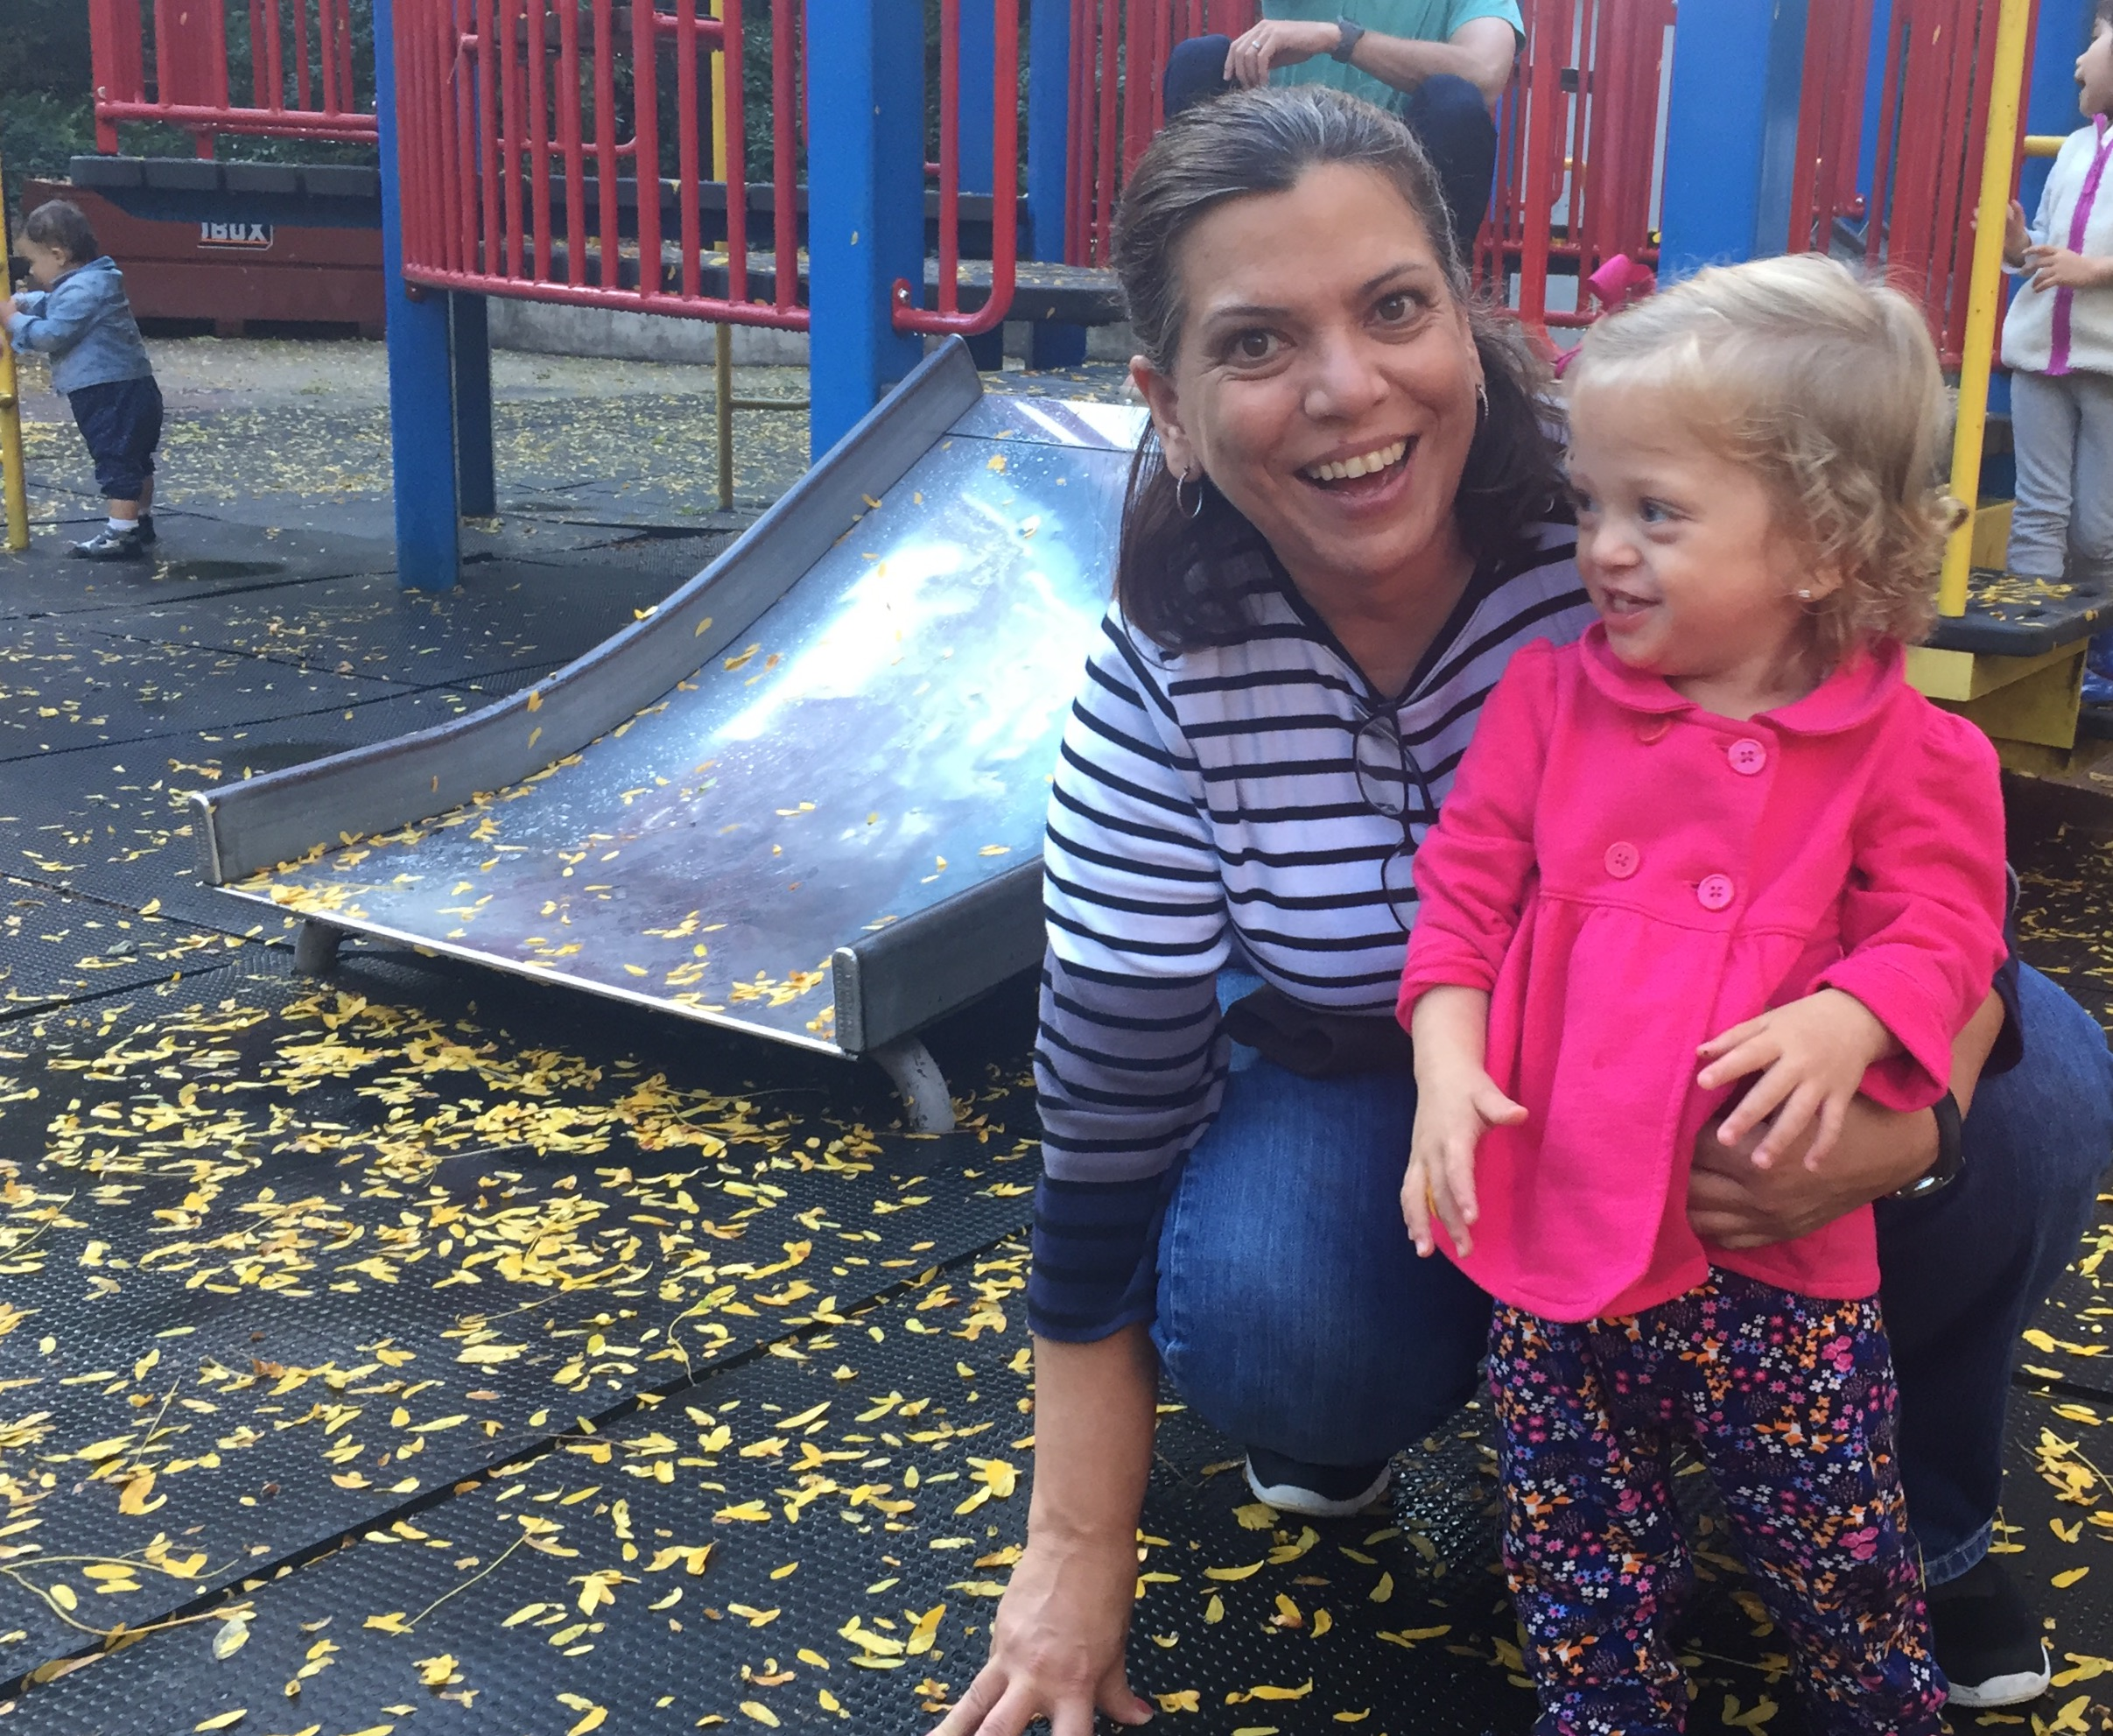 Lucie and Abuela at the playground in our neighborhood.